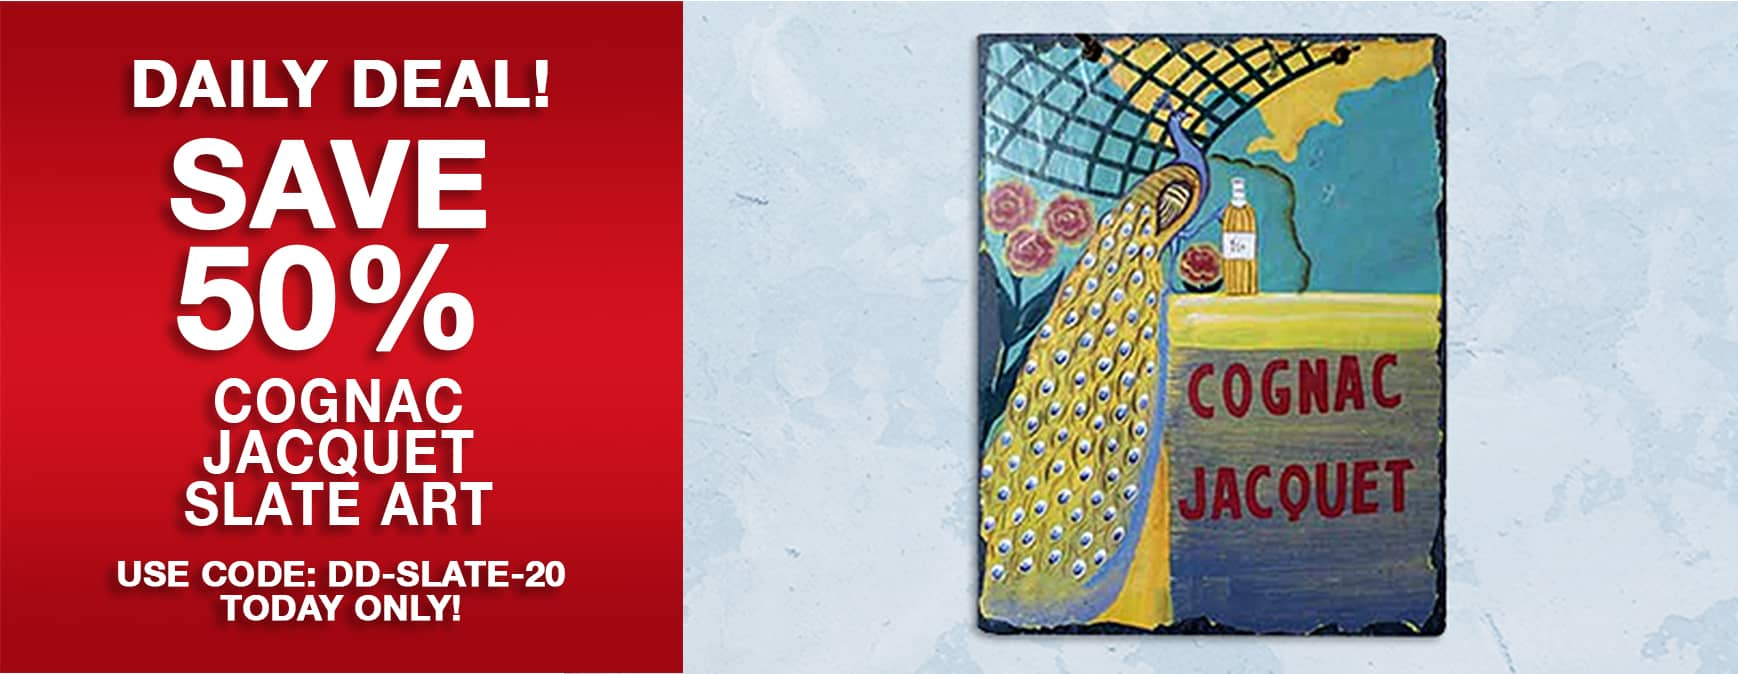 Save 50% on Cognac Jacquet Slate Art. Use code DD-SLATE-20 today only!